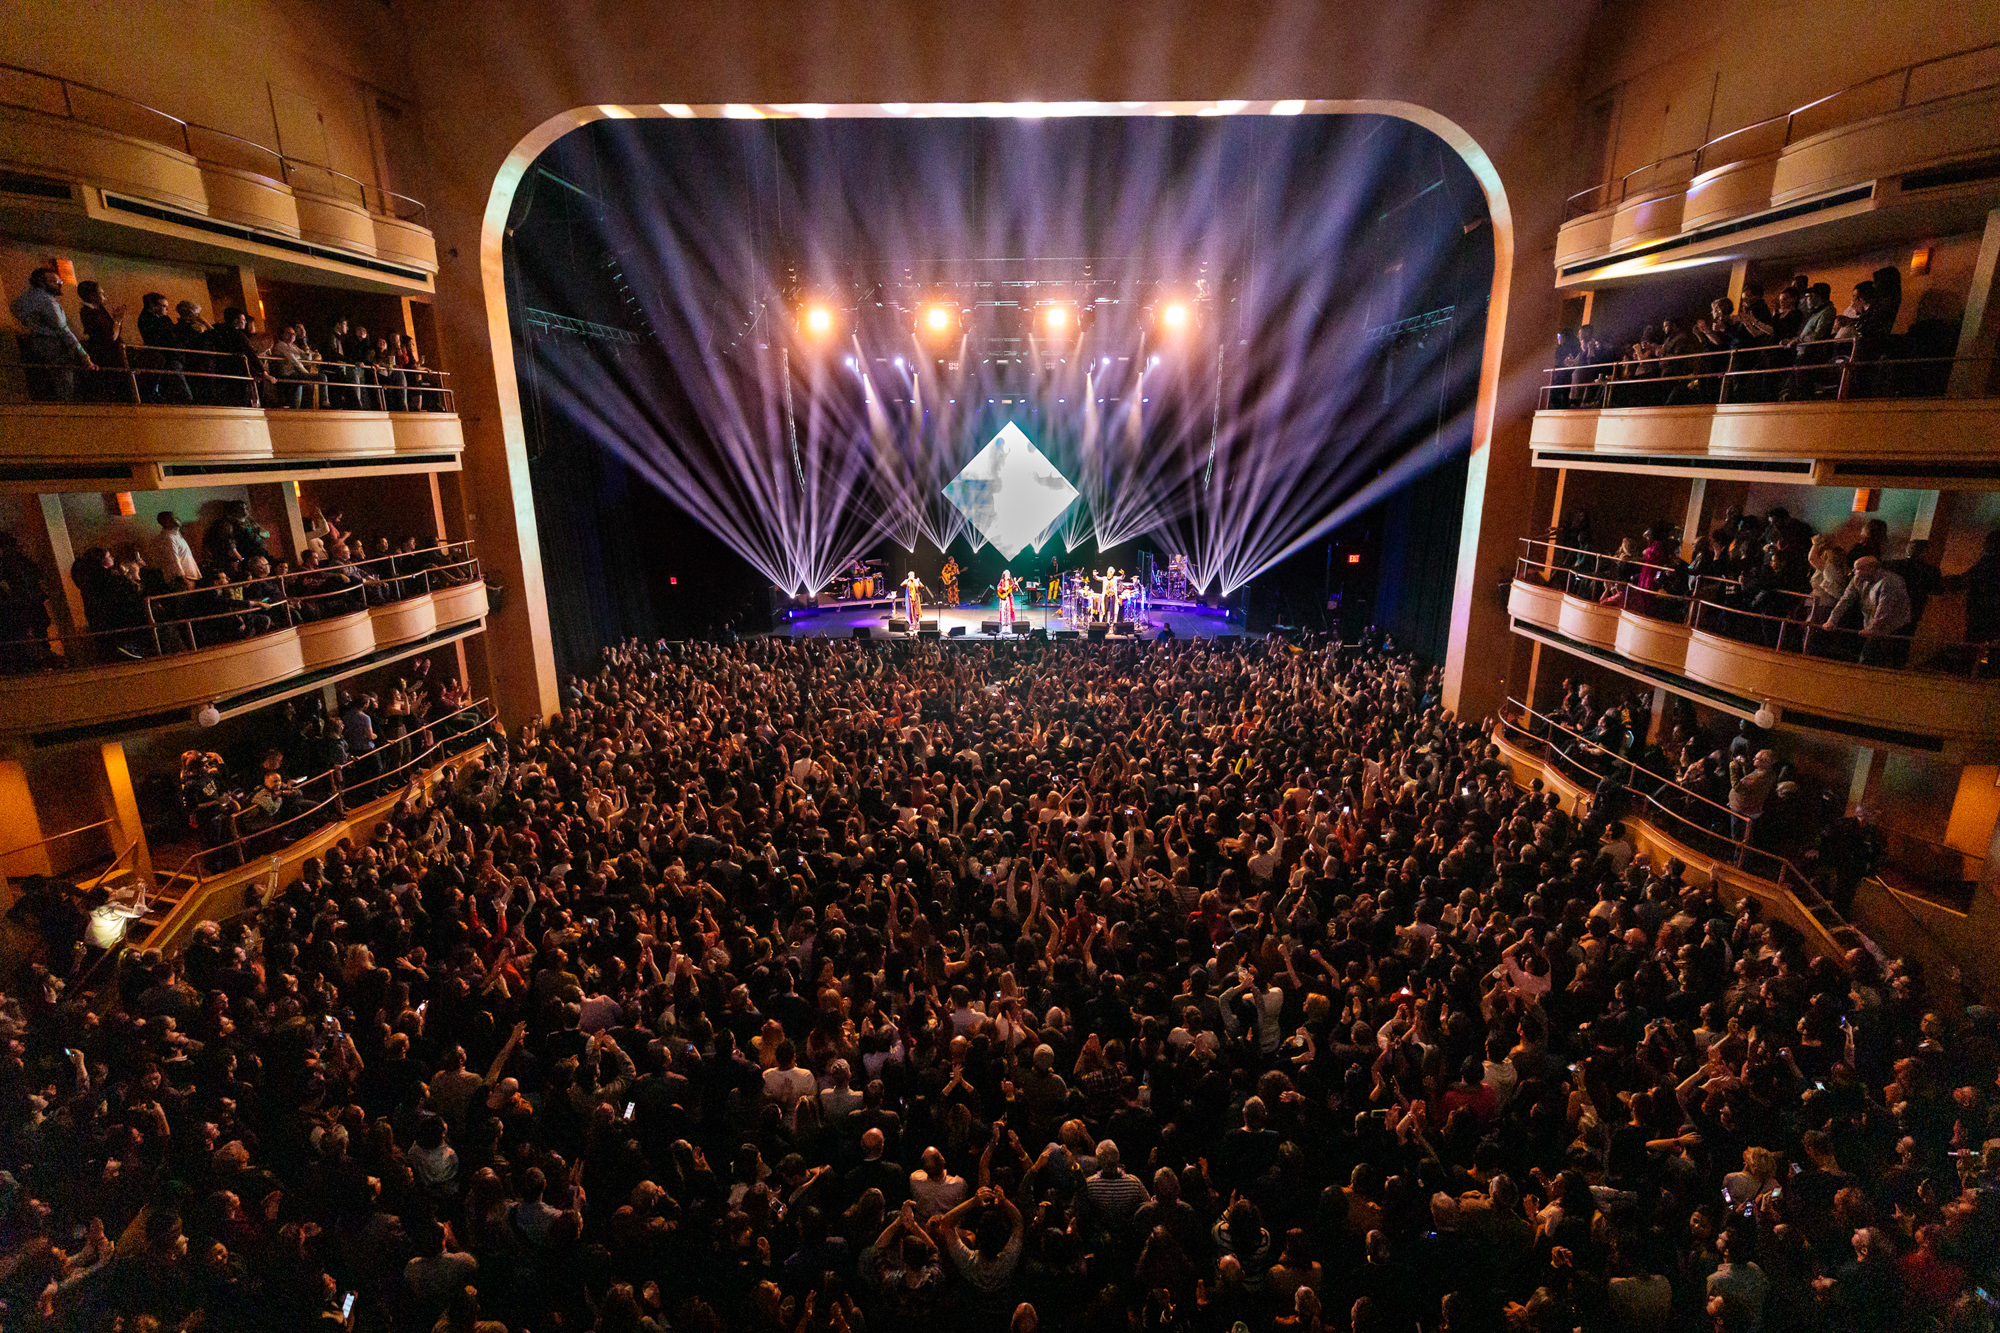 Tribalistas at Hammerstein Ballroom on February 5, 2019.